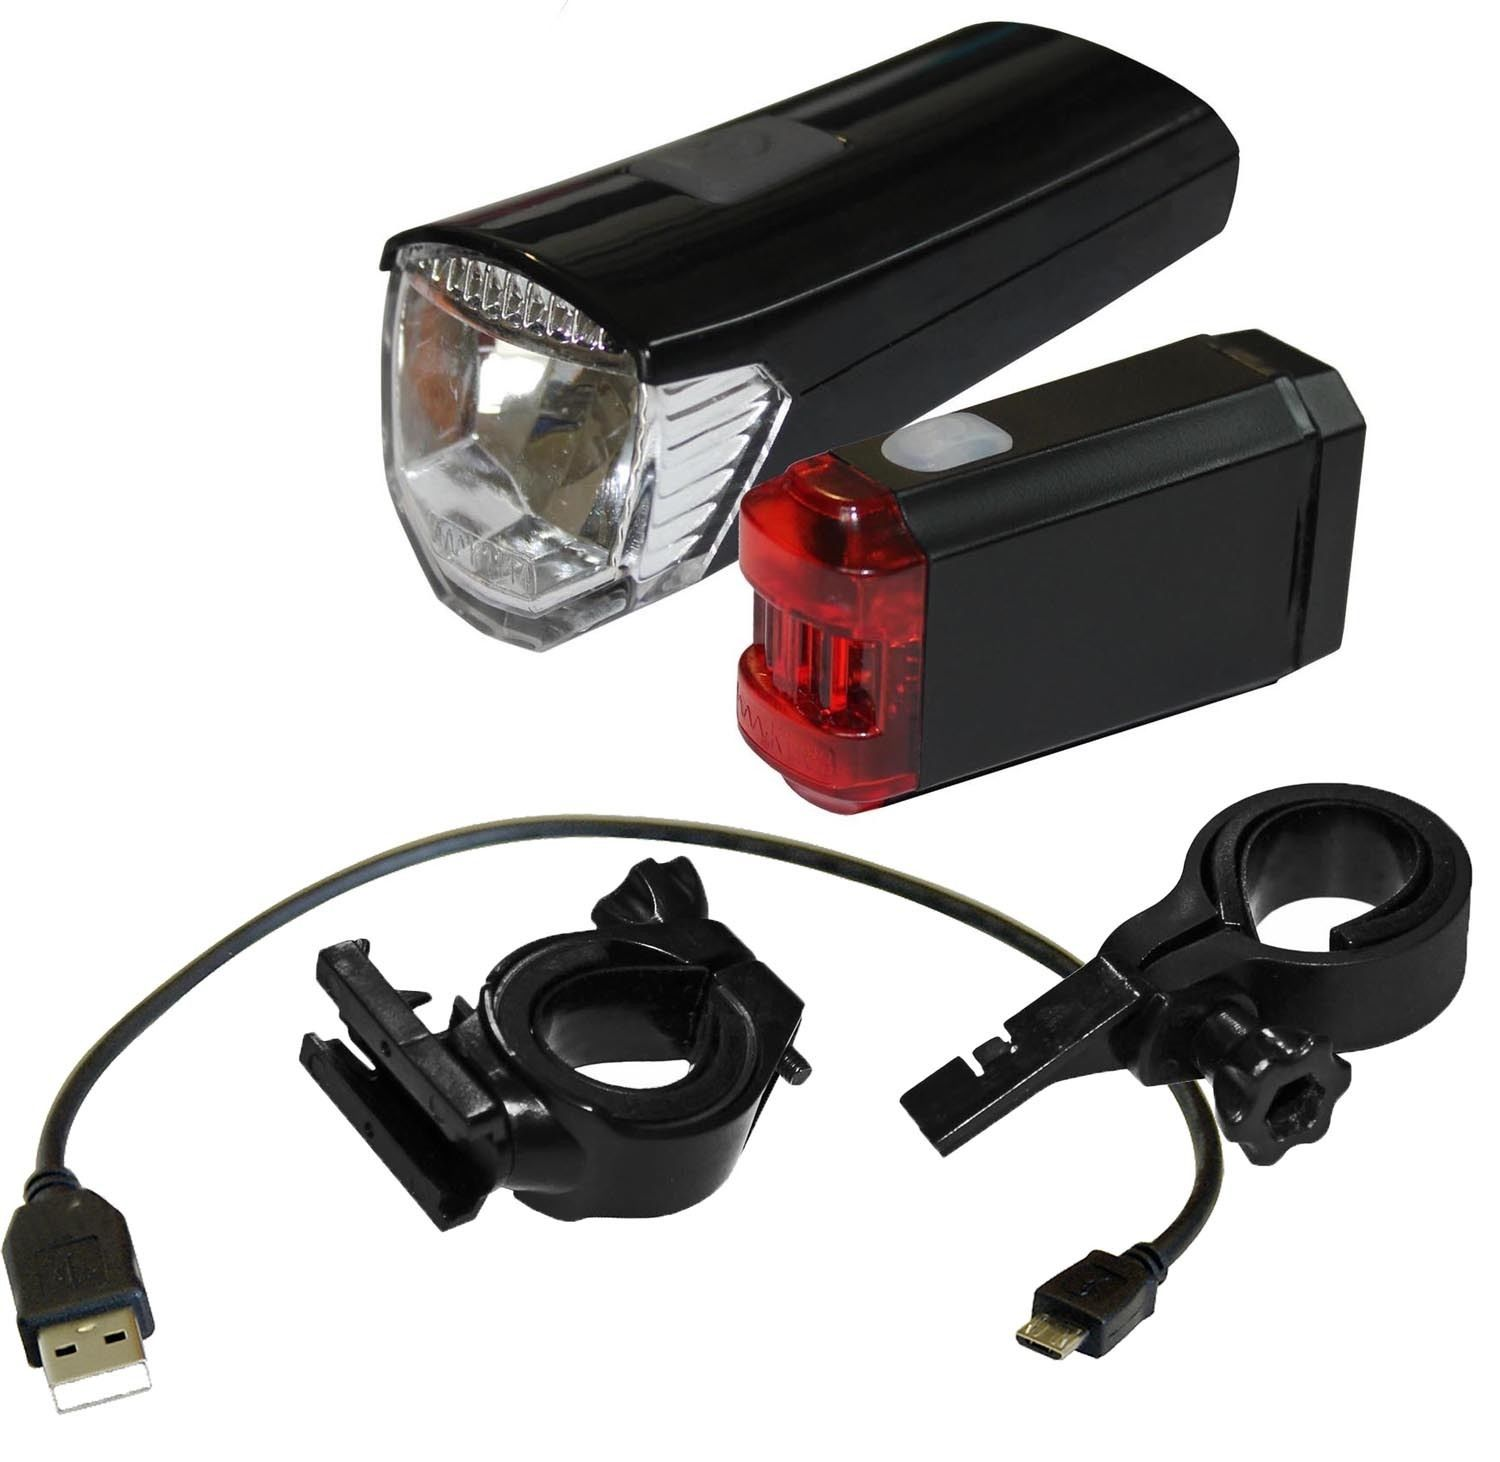 red loon akku led fahrradlampen fahrradlicht mit usb. Black Bedroom Furniture Sets. Home Design Ideas